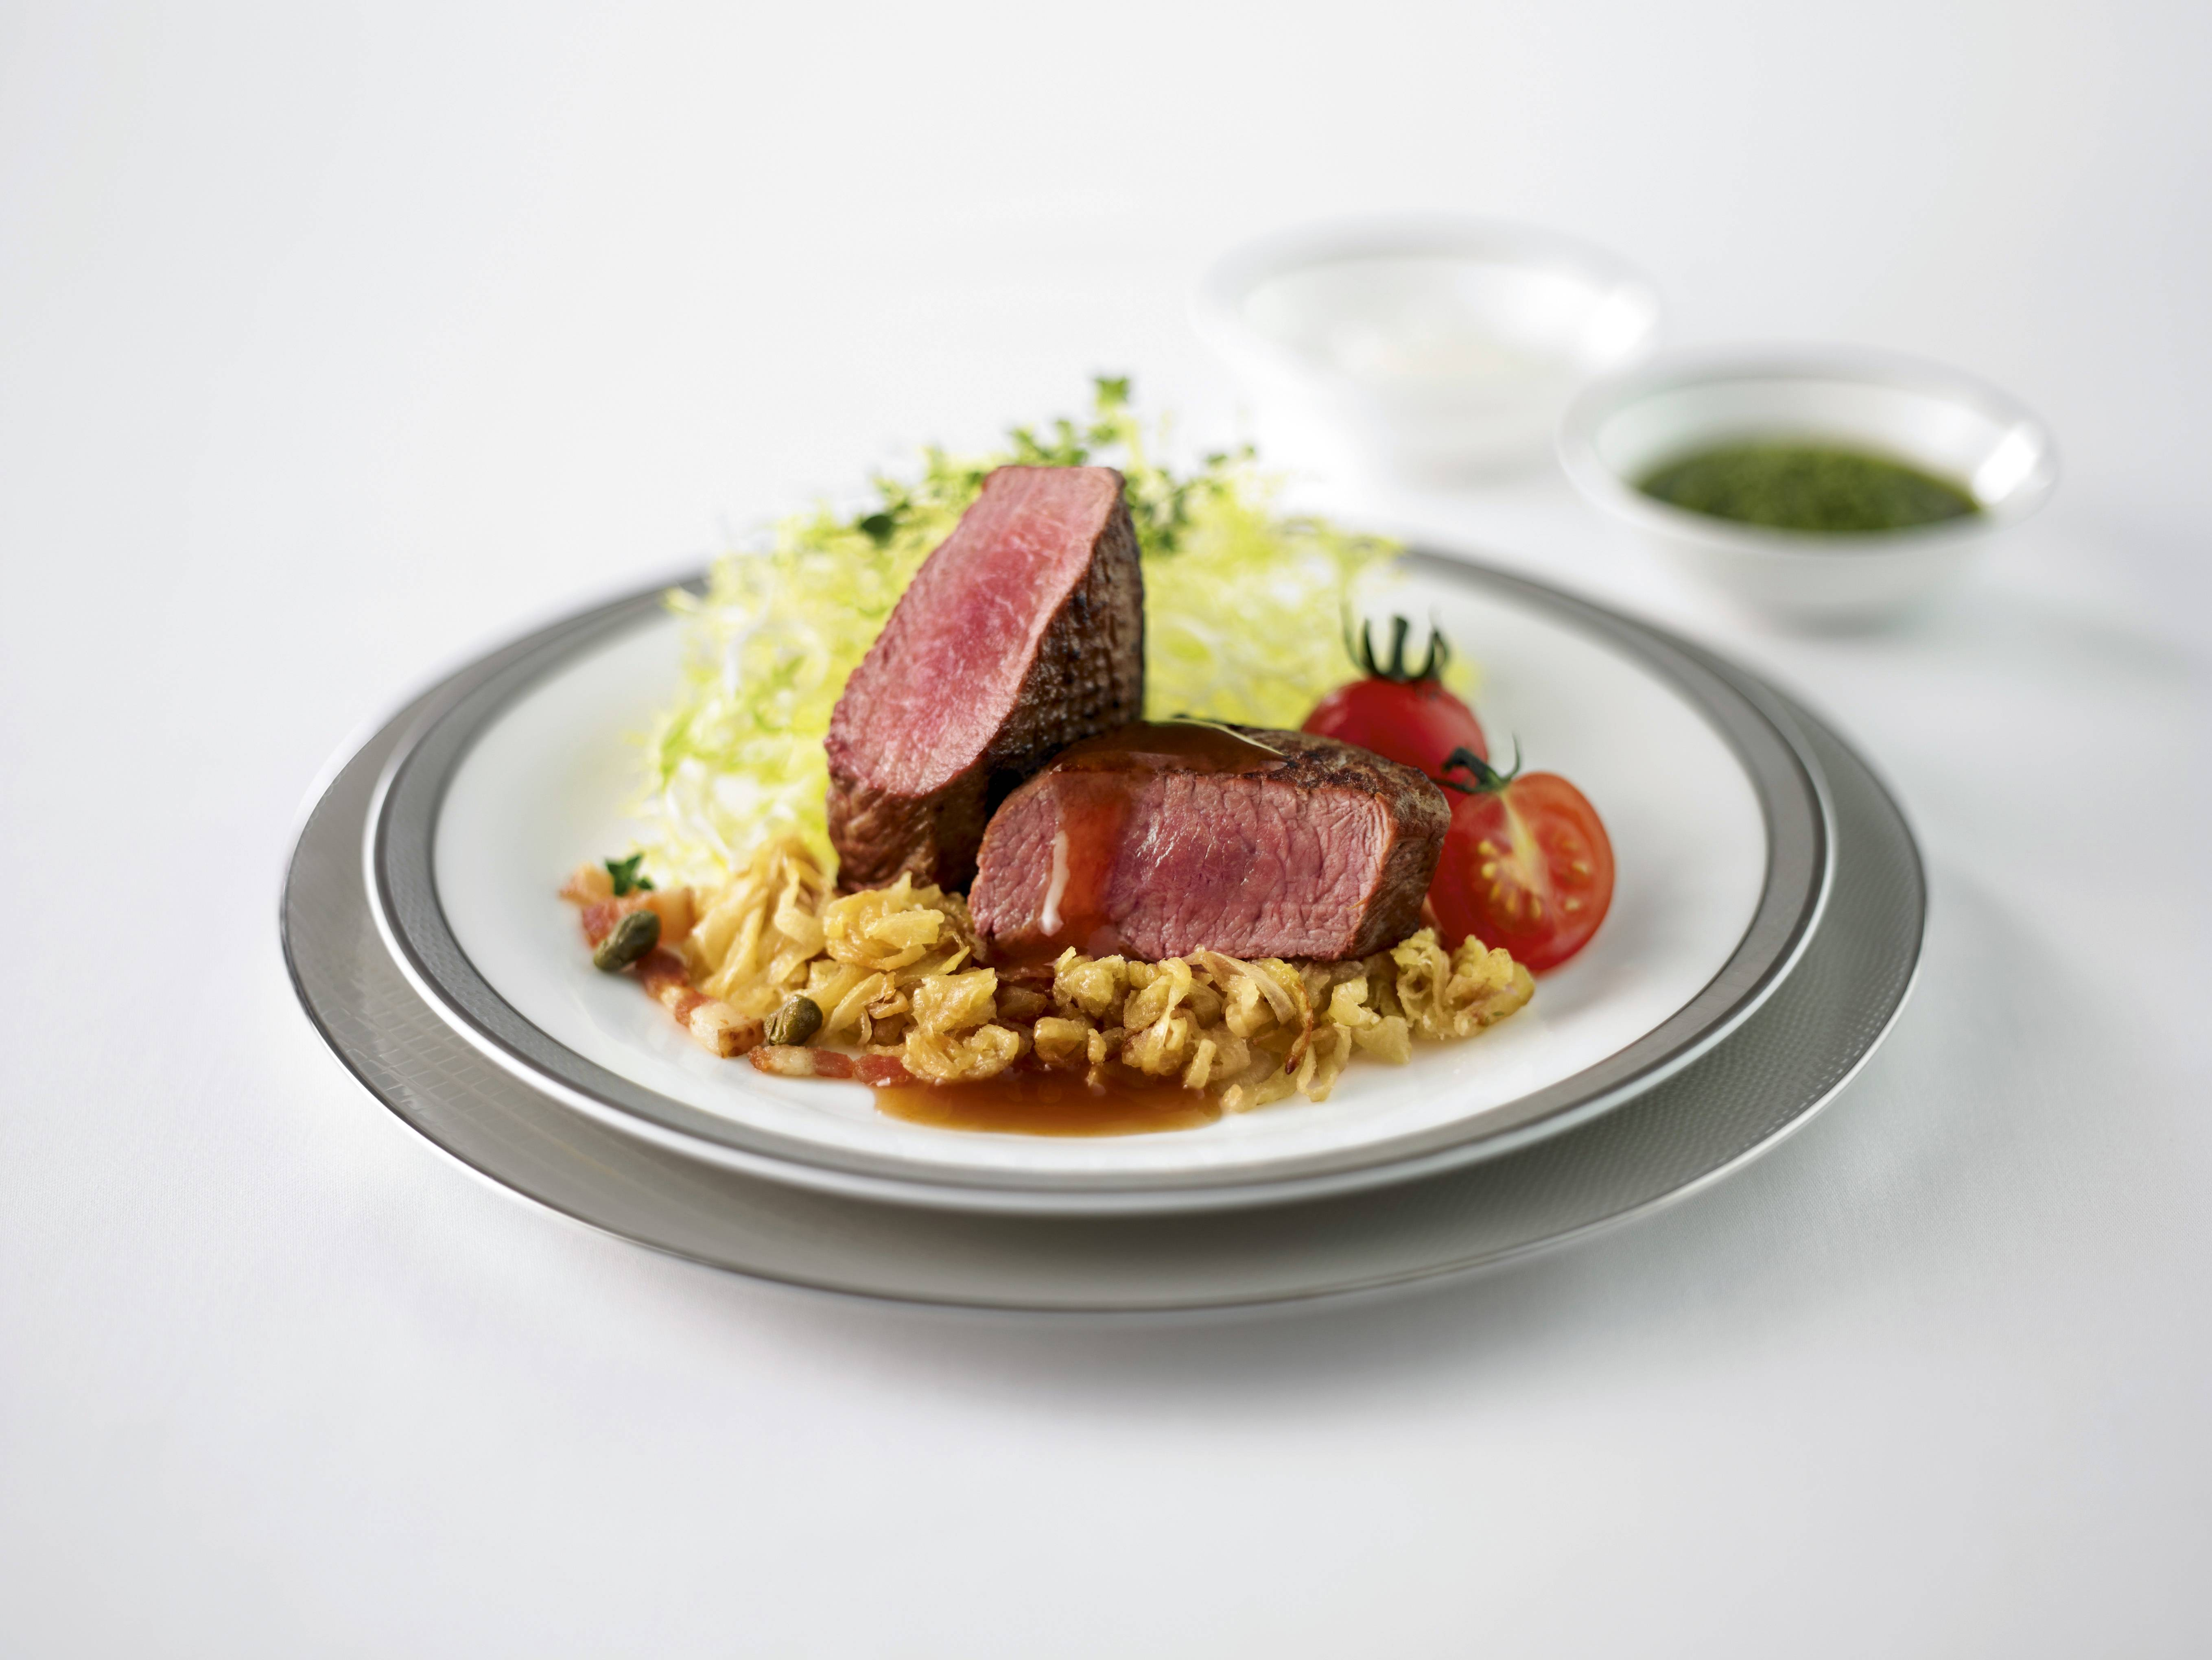 Seared Lamb Loin is available in the 'Book the Cook' menu for Business Class from Singapore.